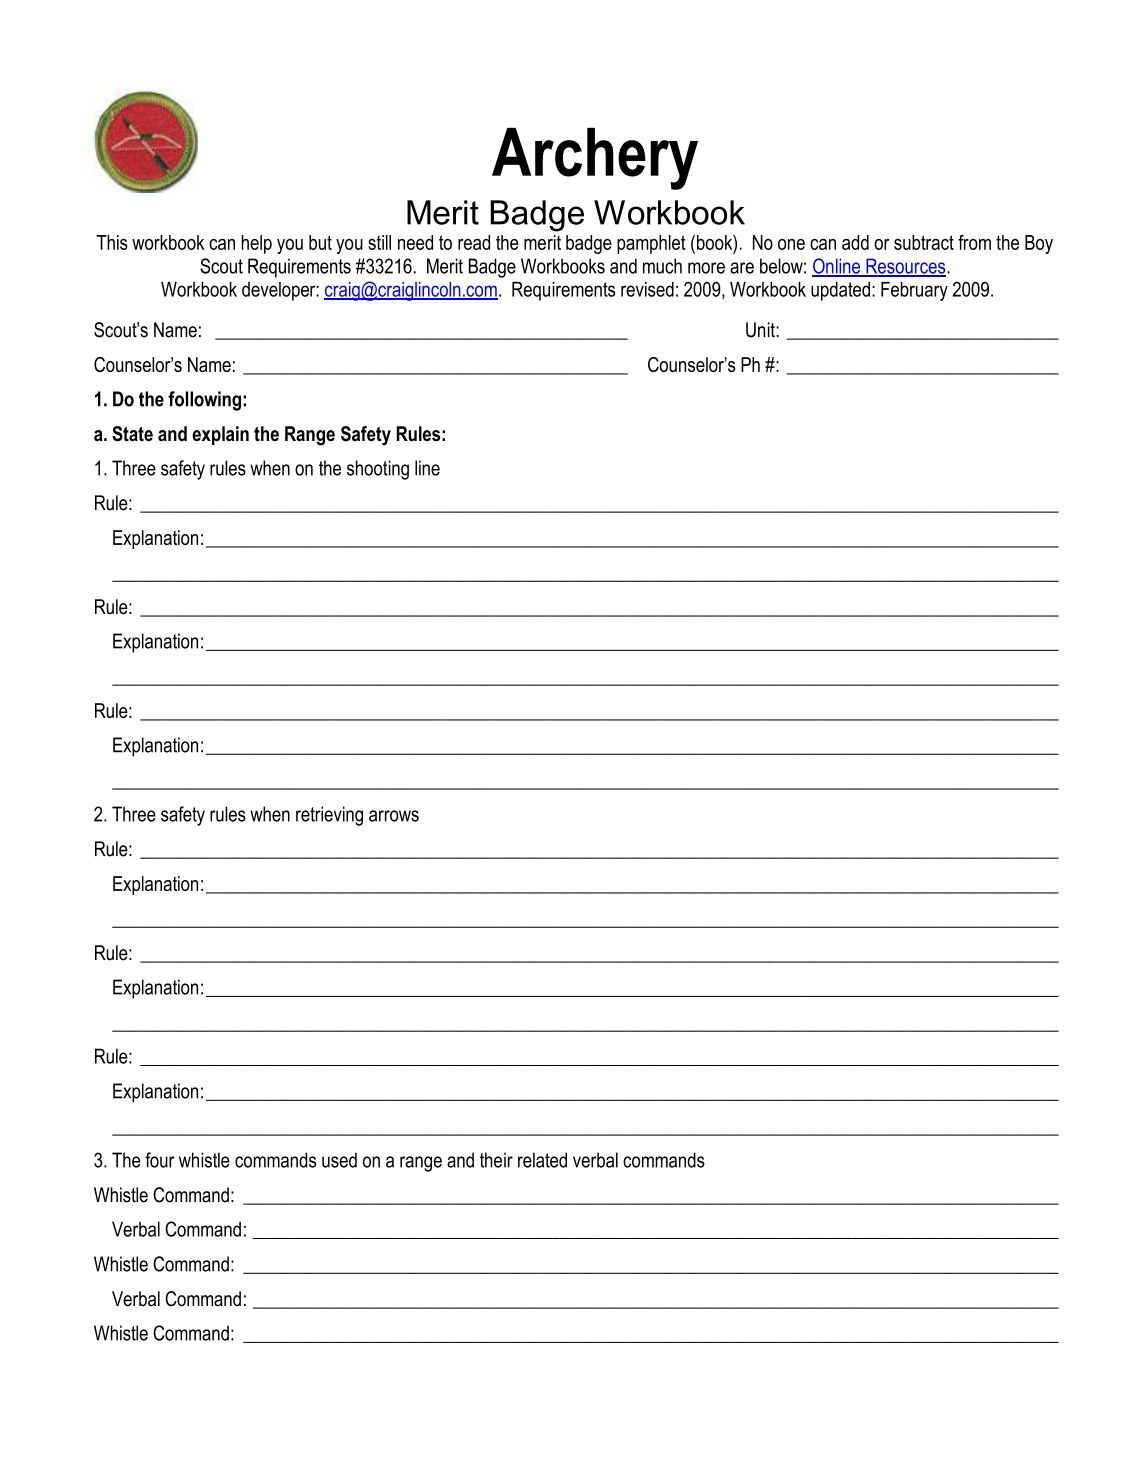 Printables. Personal Management Merit Badge Worksheet. Gozoneguide ...